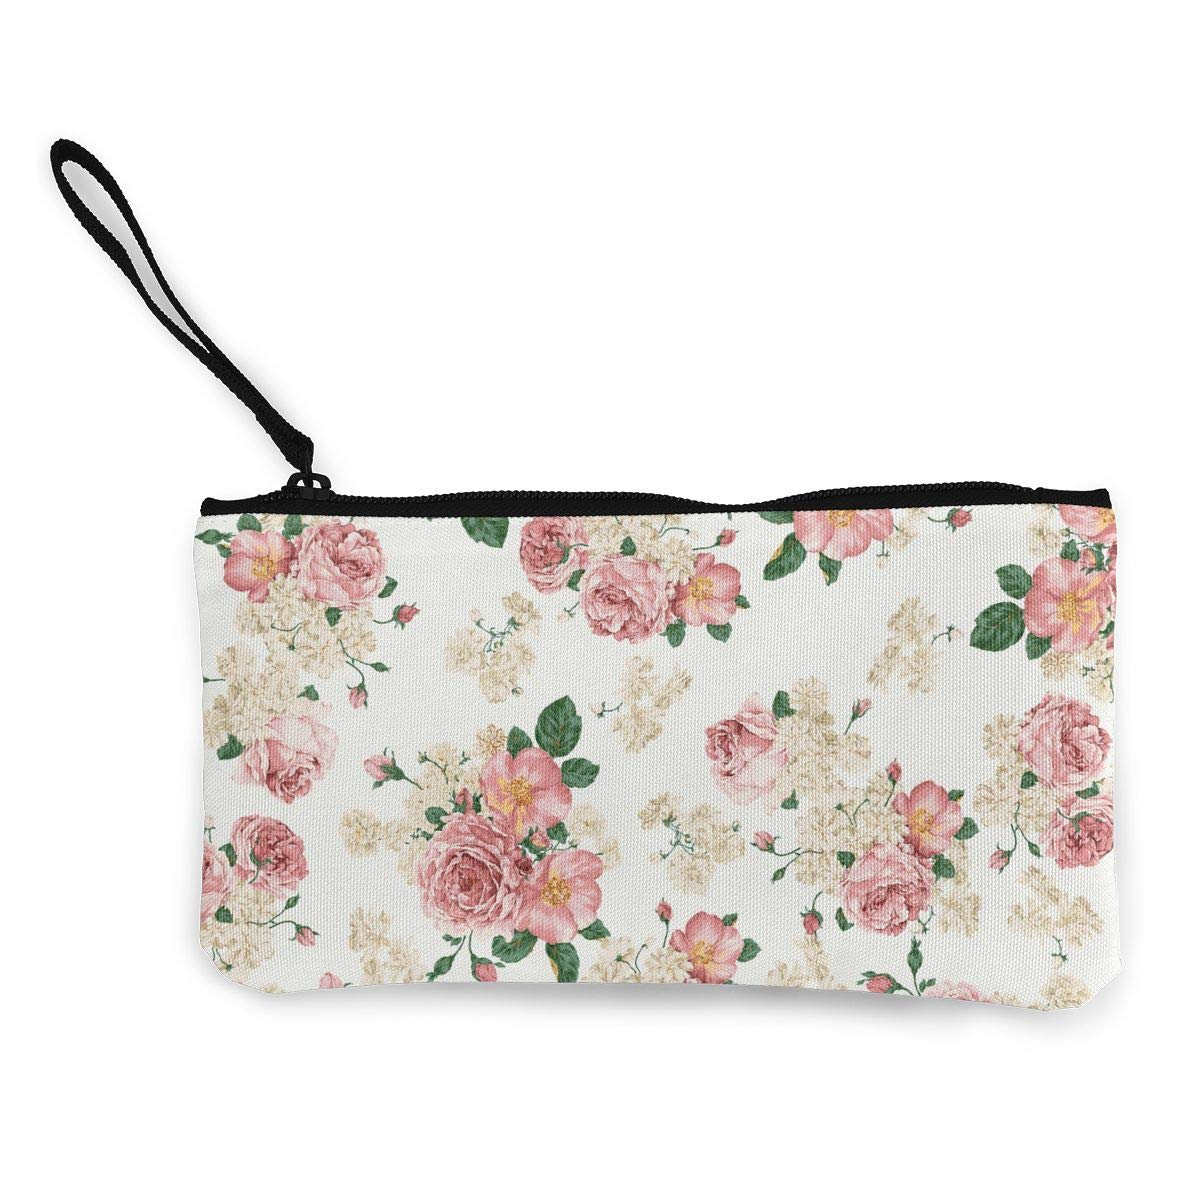 Huery Vintage Wallpaper Tumblr Coin Purse Cute Looking